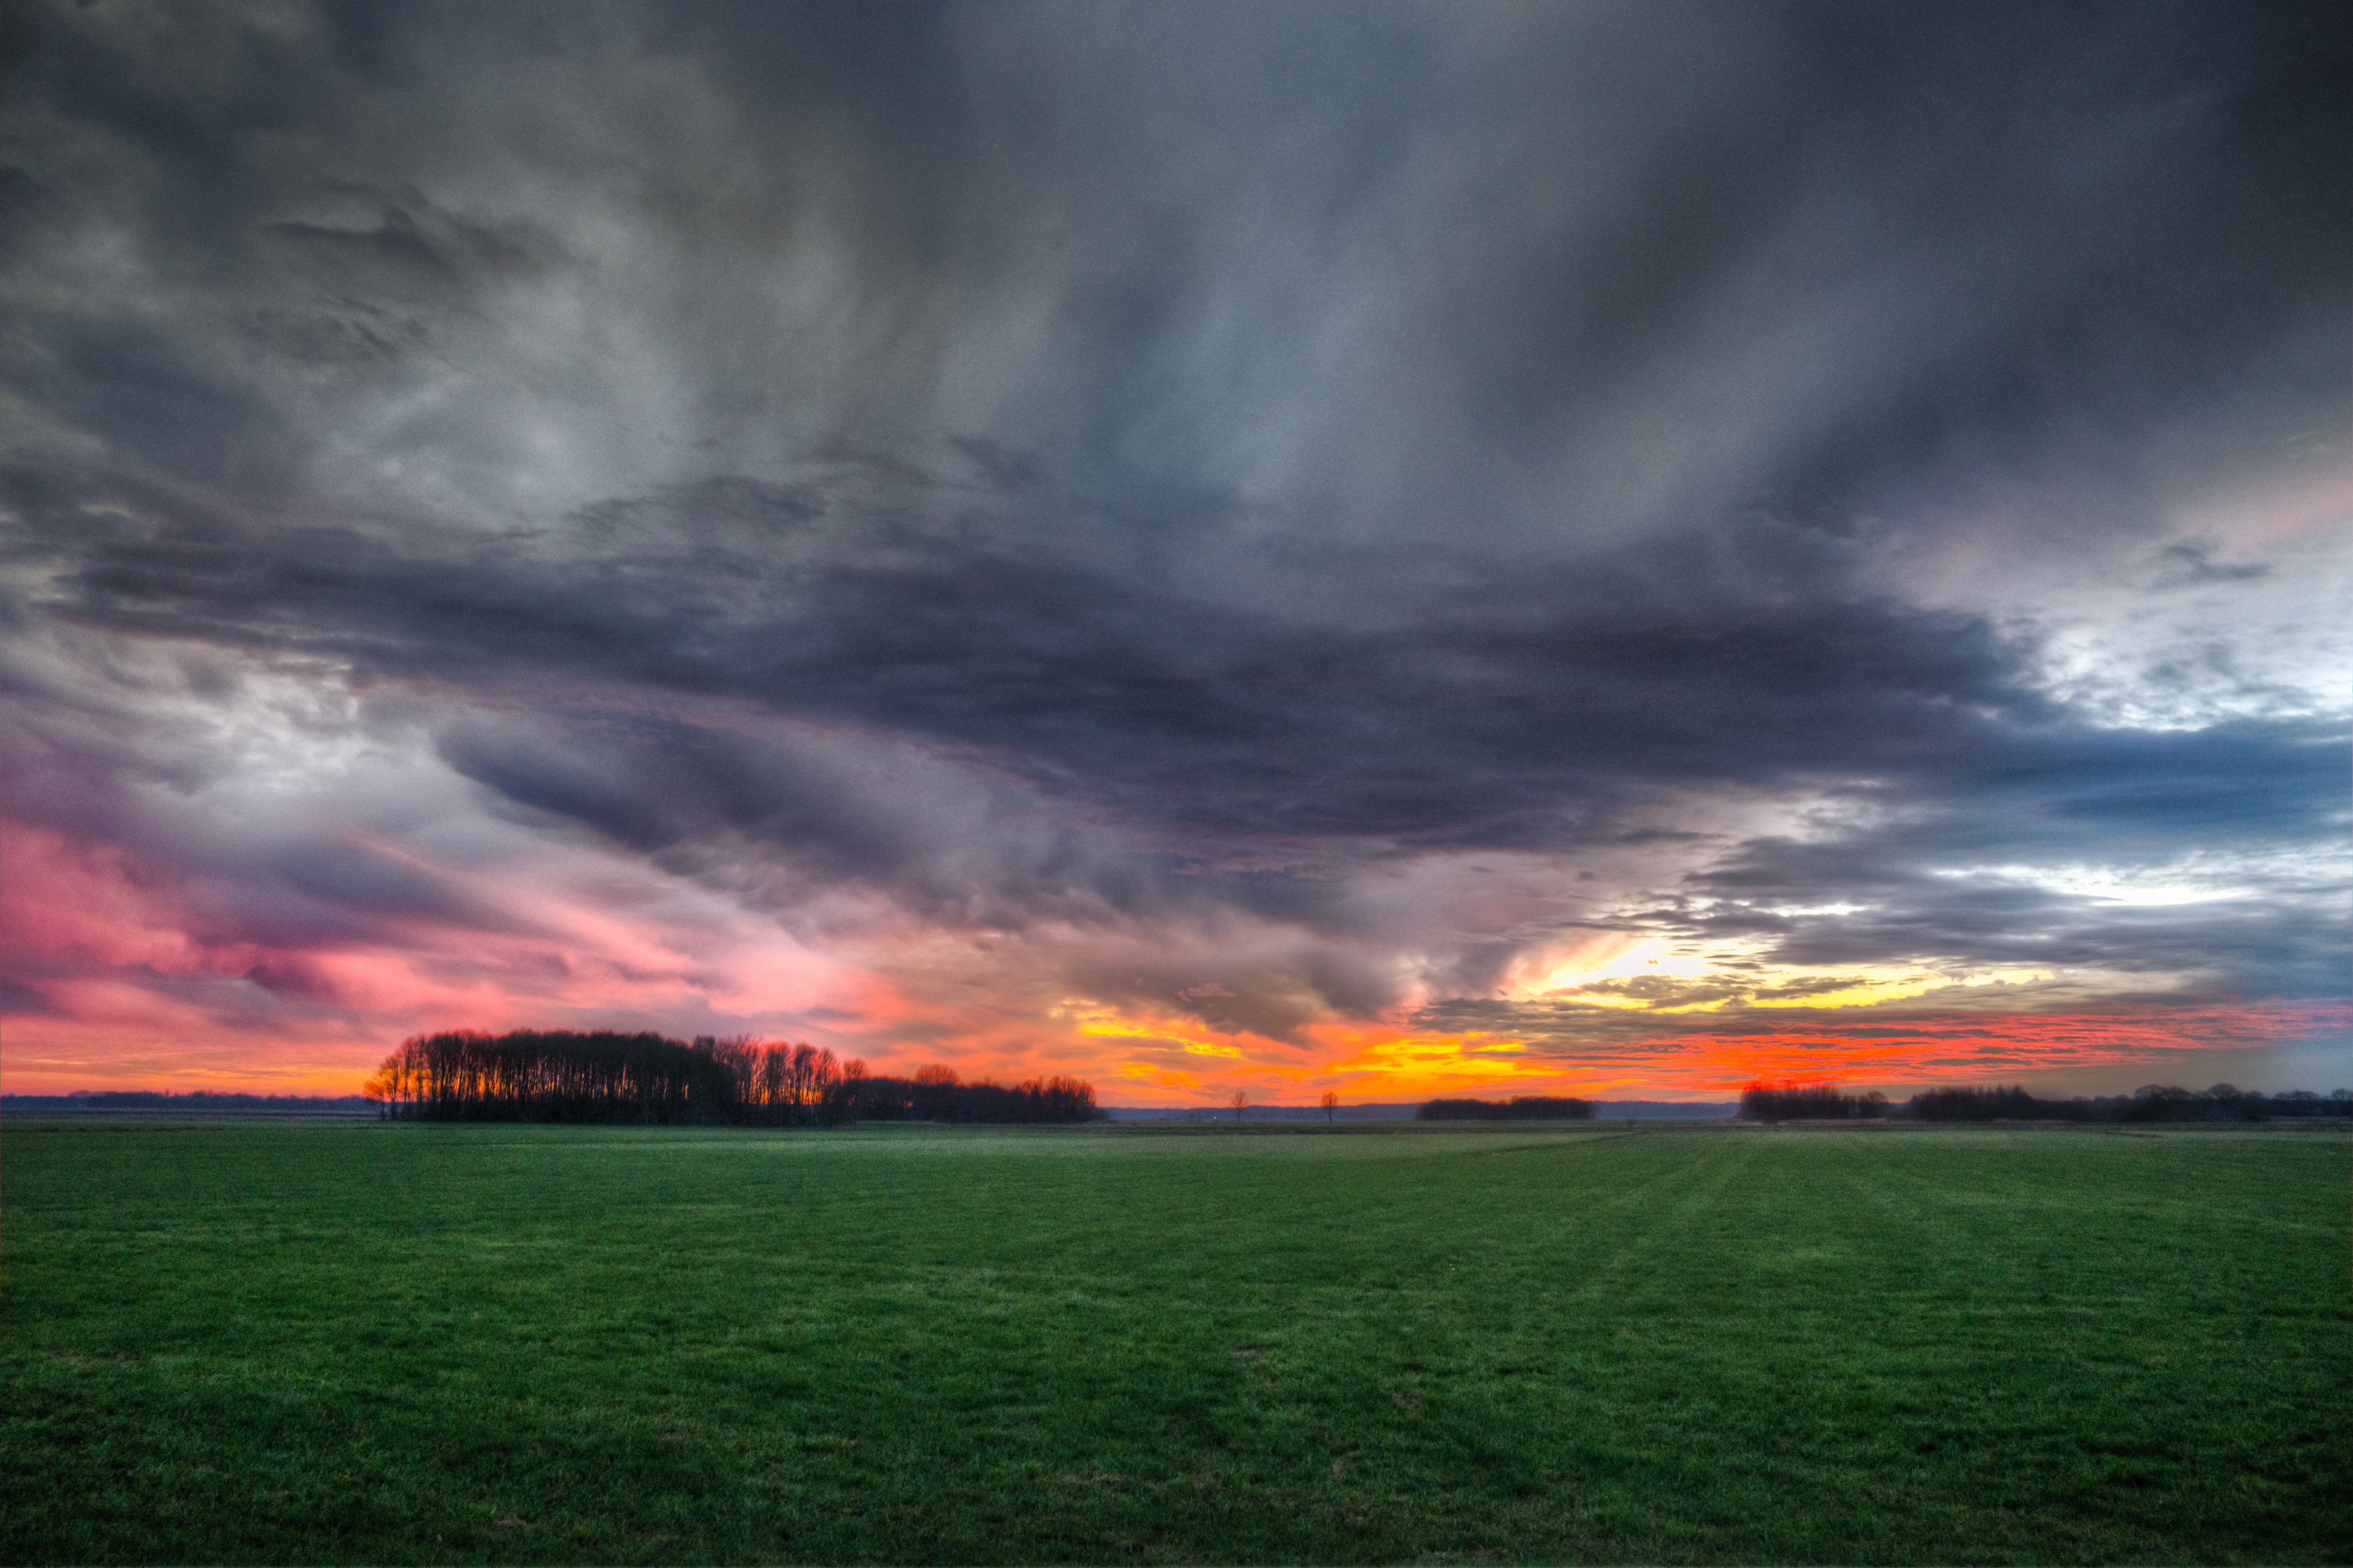 Storm Clouds over Field During Sunset, Clouds, Lawn, Sunset, Sunrise, HQ Photo